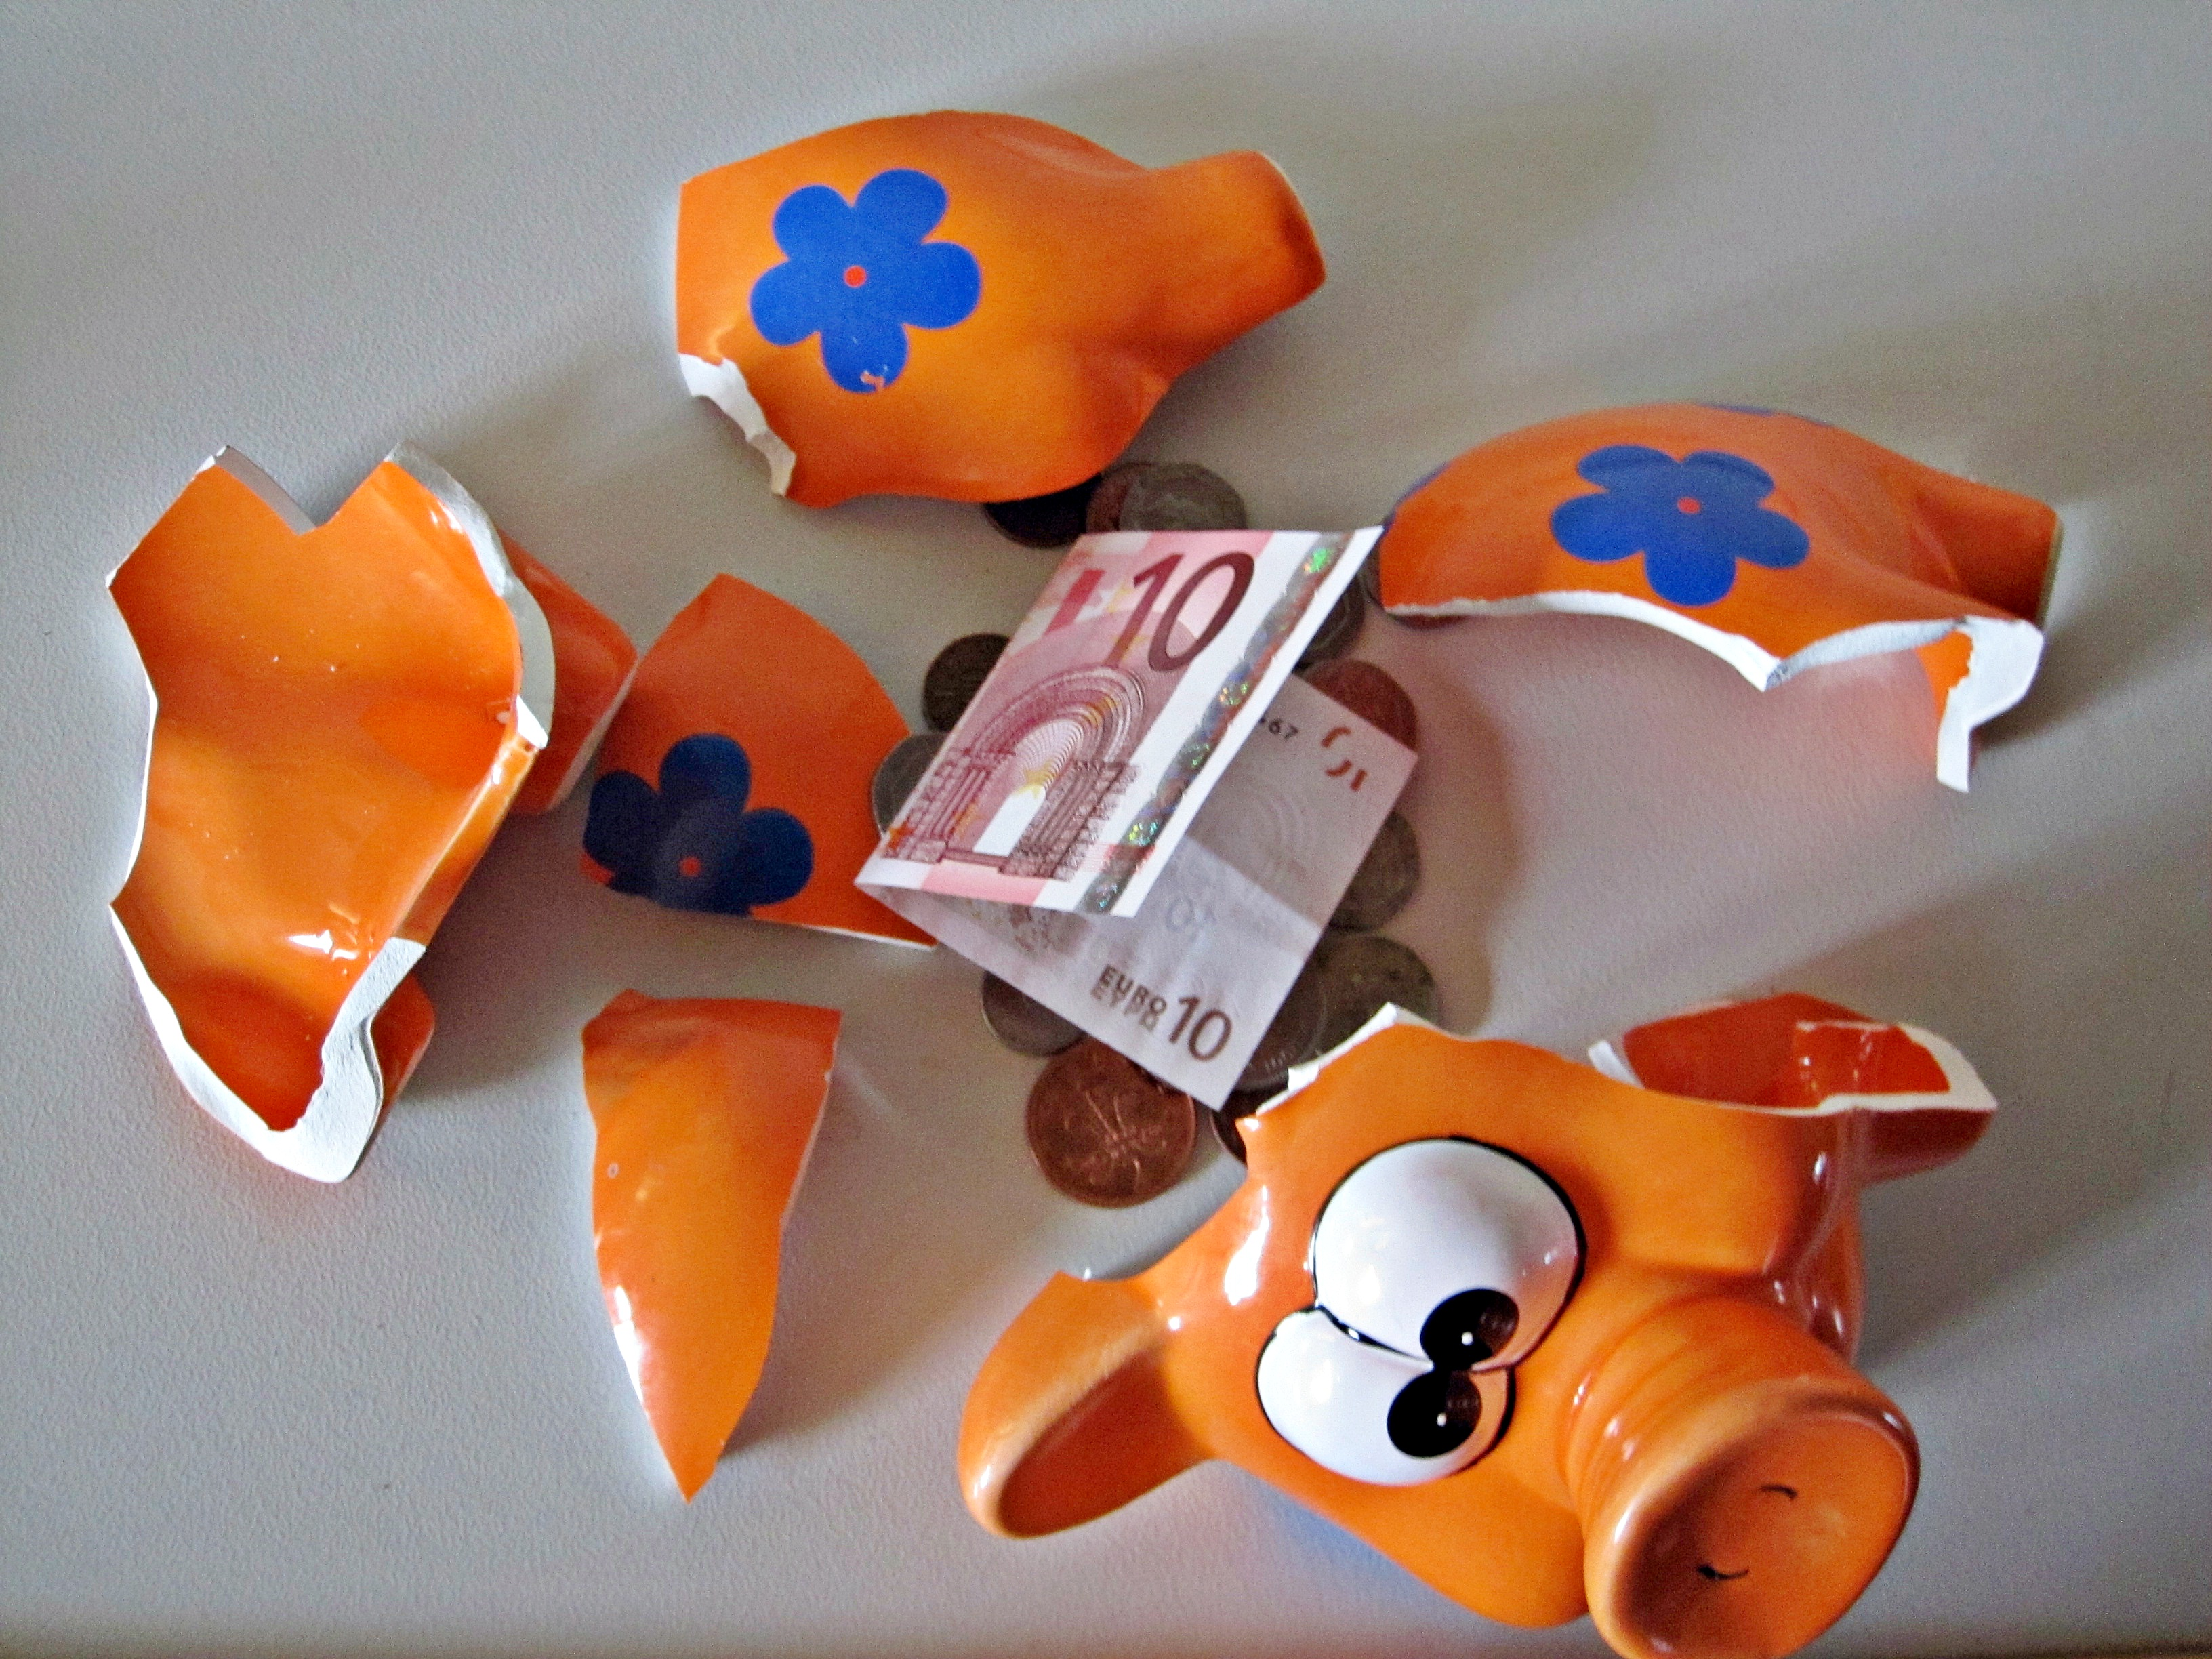 Piggy bank with Euro Note